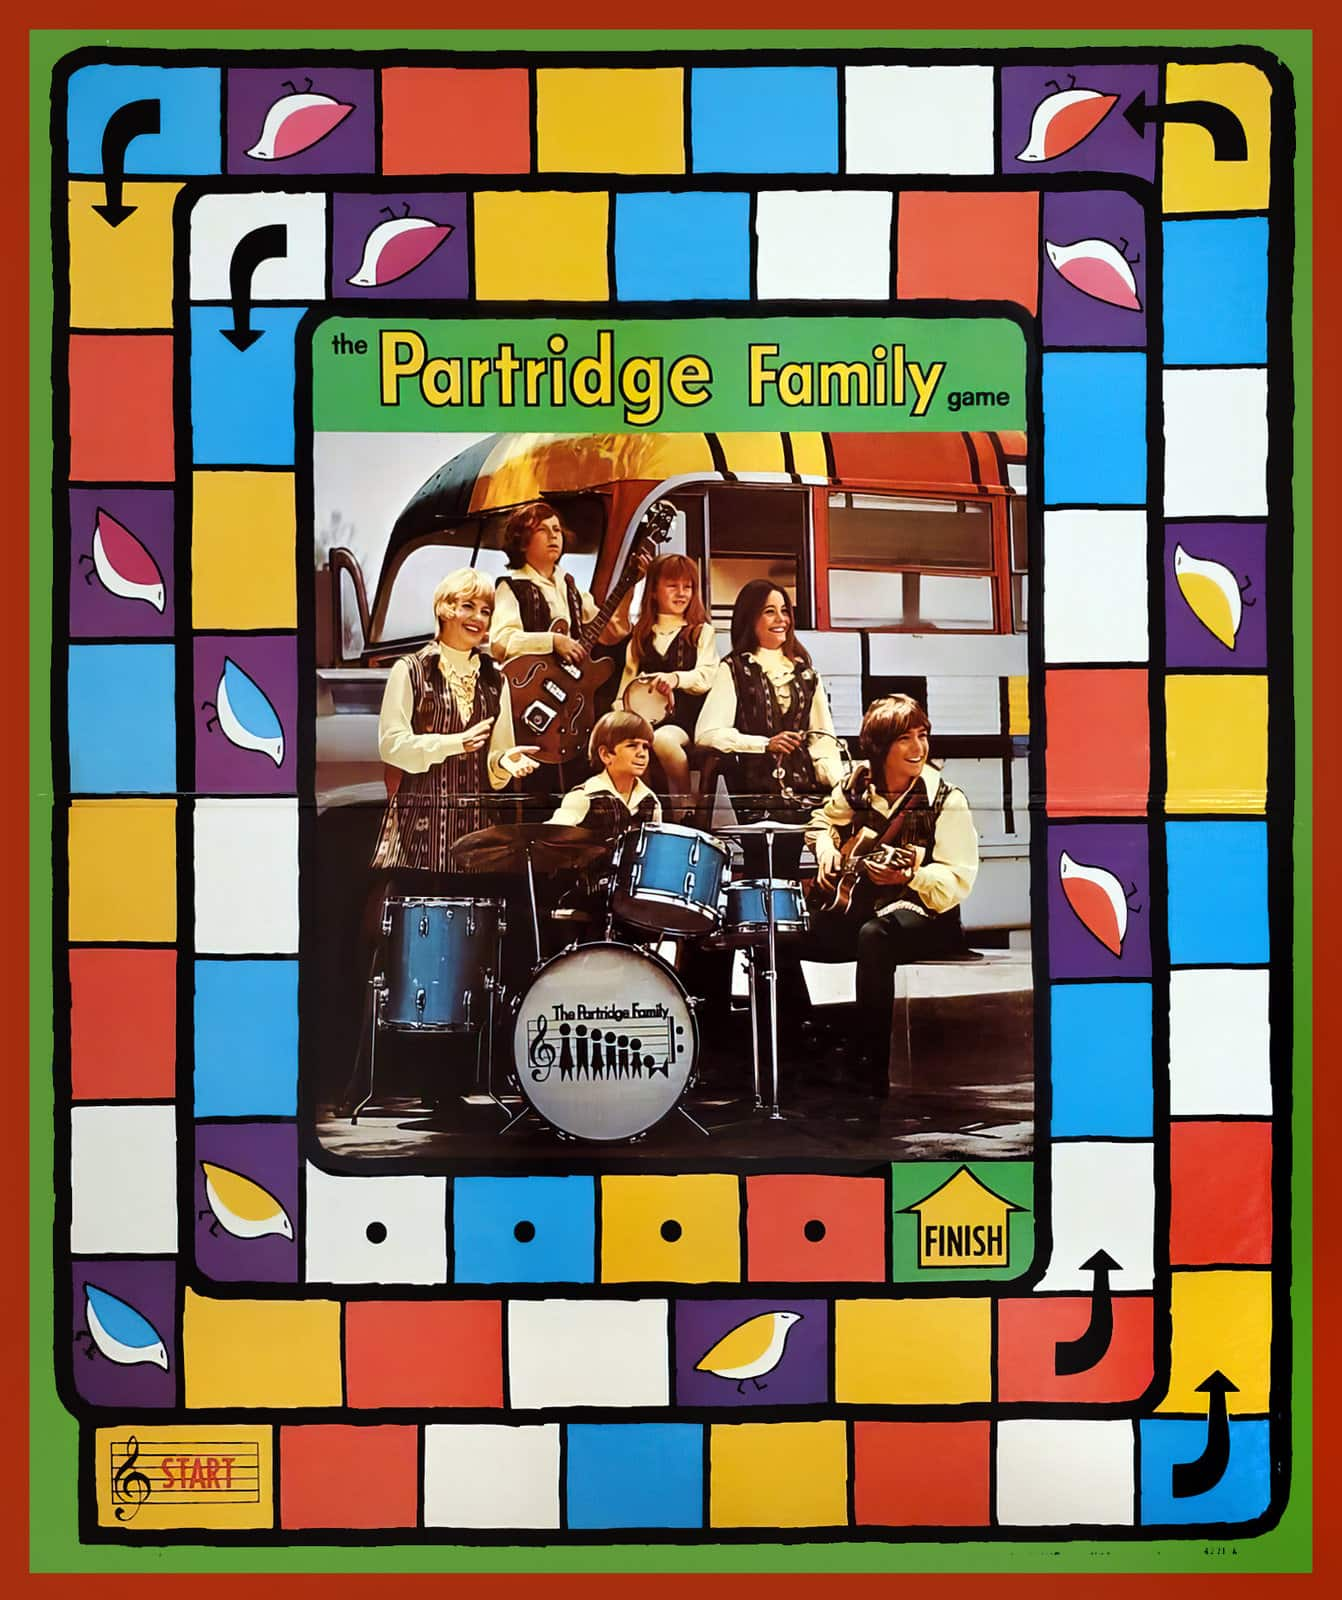 Partridge Family game board